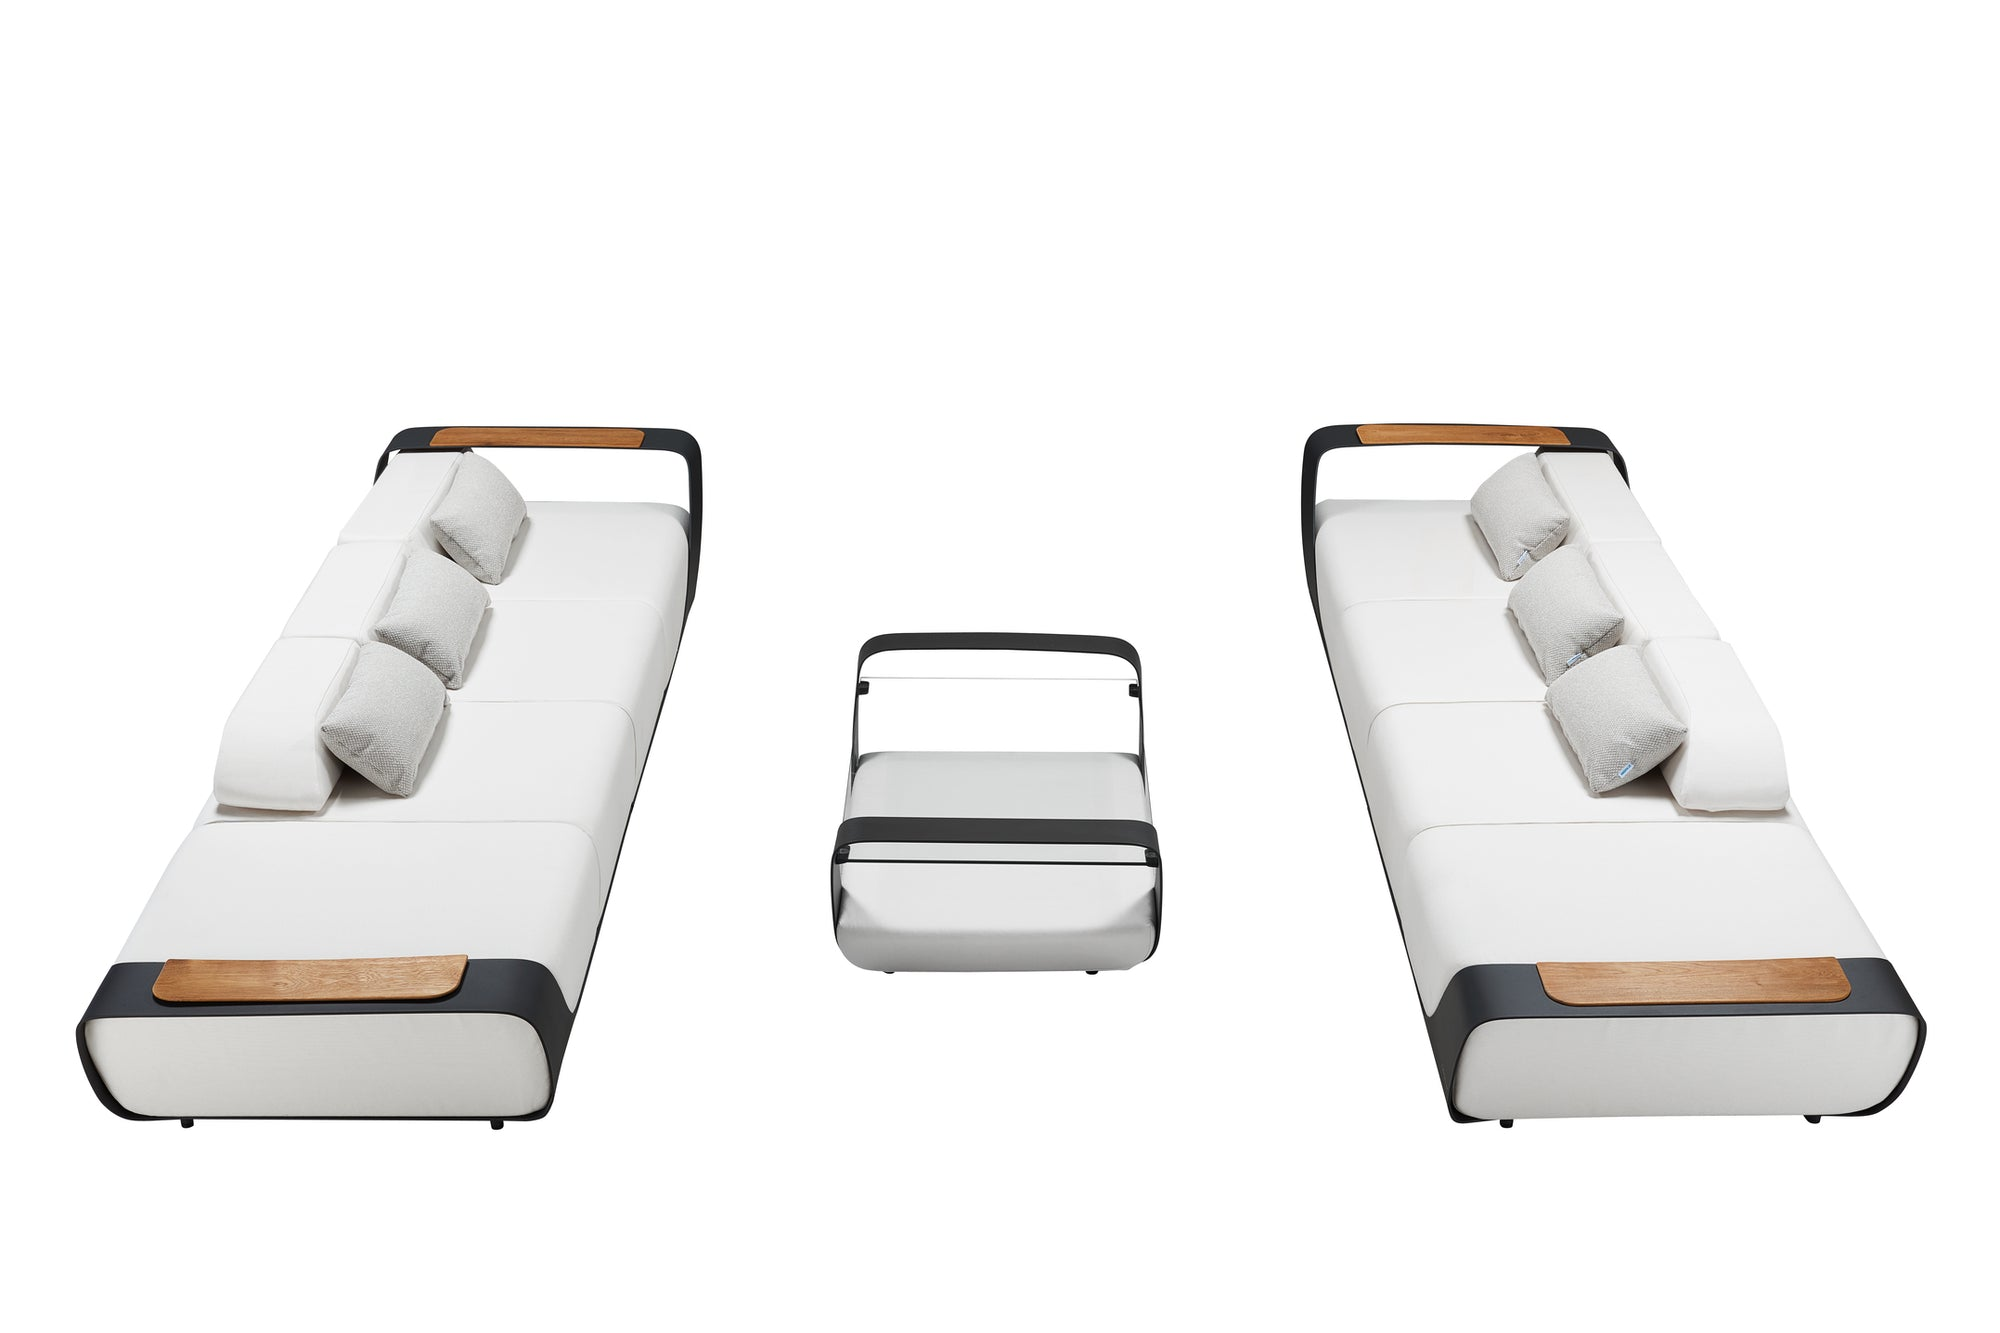 Double Sofa Outdoor Lounge Set | Higold Pininfarina | OROA Furniture